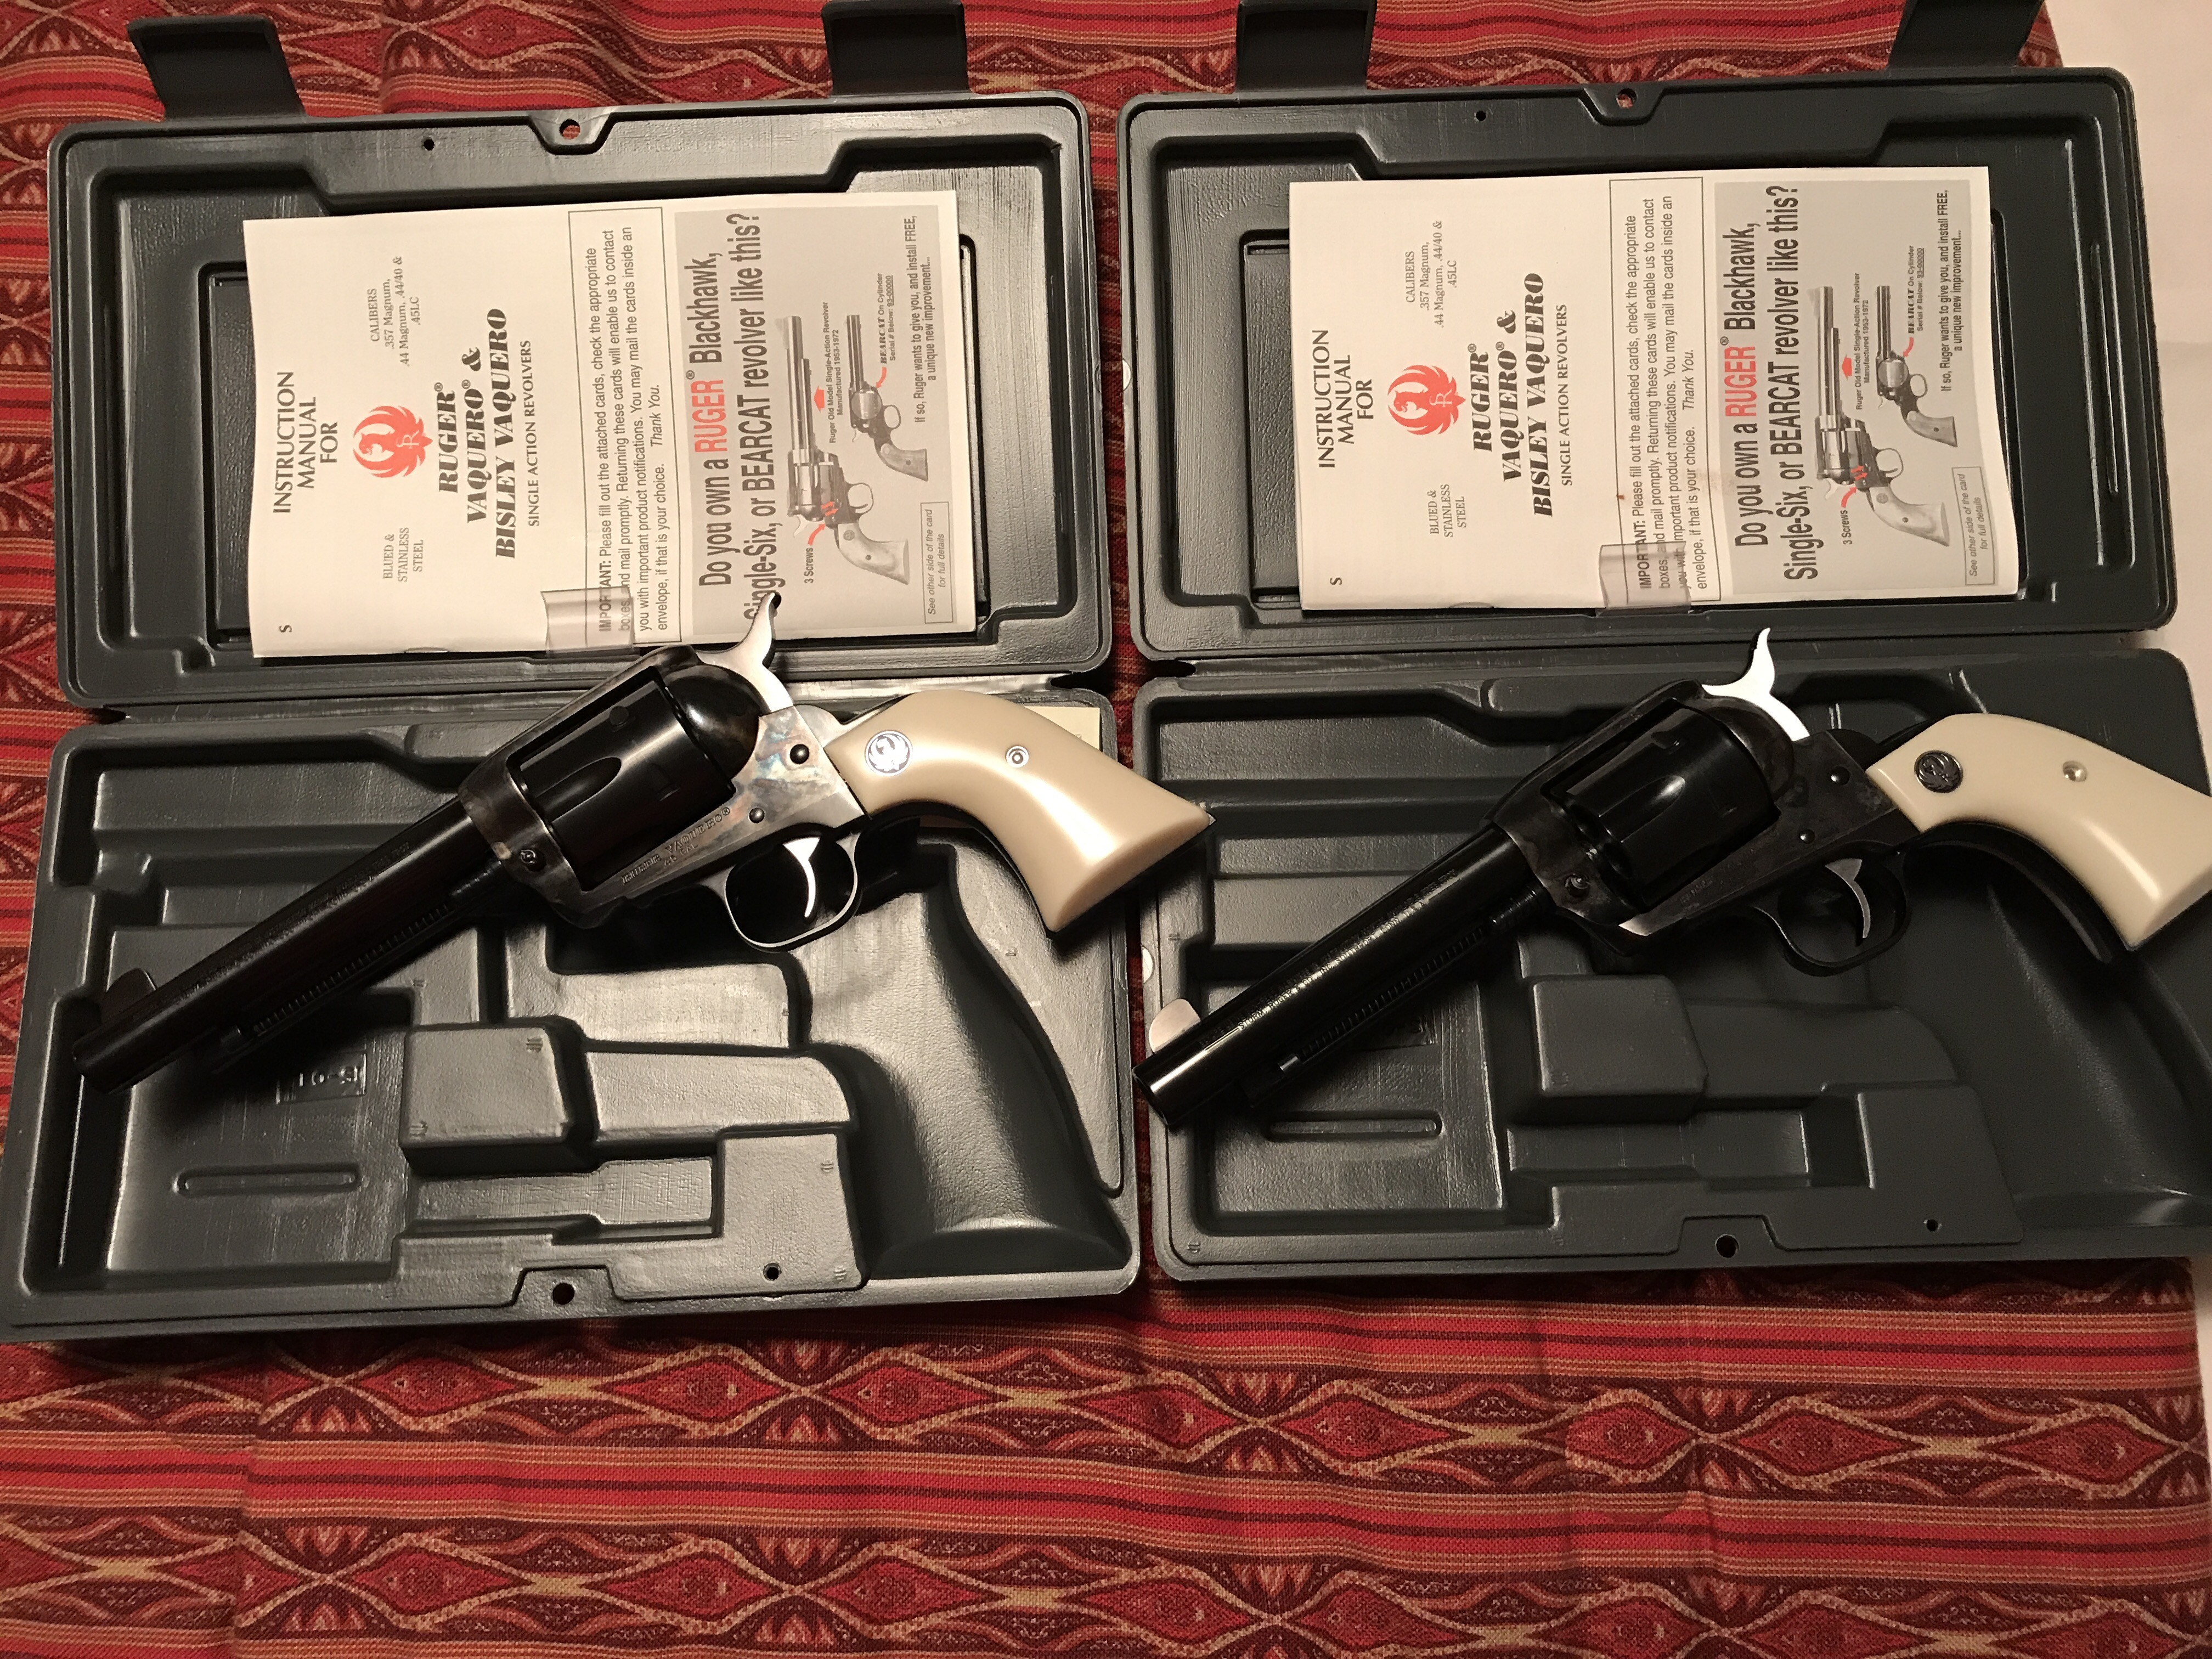 Ruger Vaquero  Pistol set - SASS Wire Classifieds - SASS Wire Forum